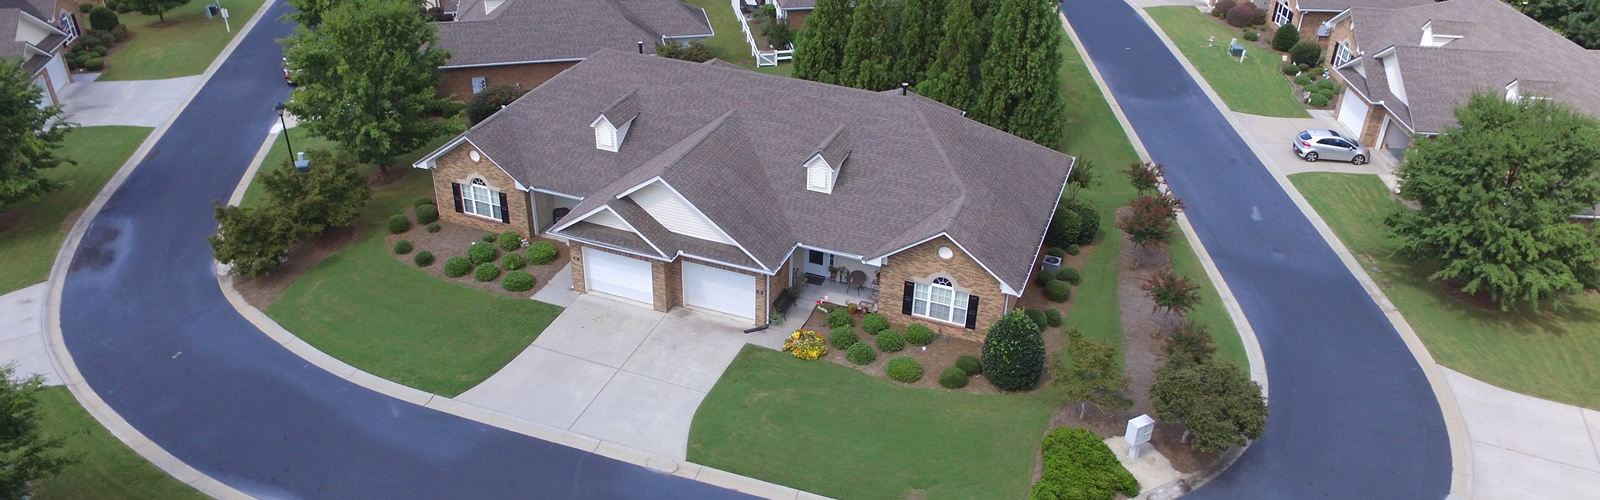 Cottages of Monroe Arial View